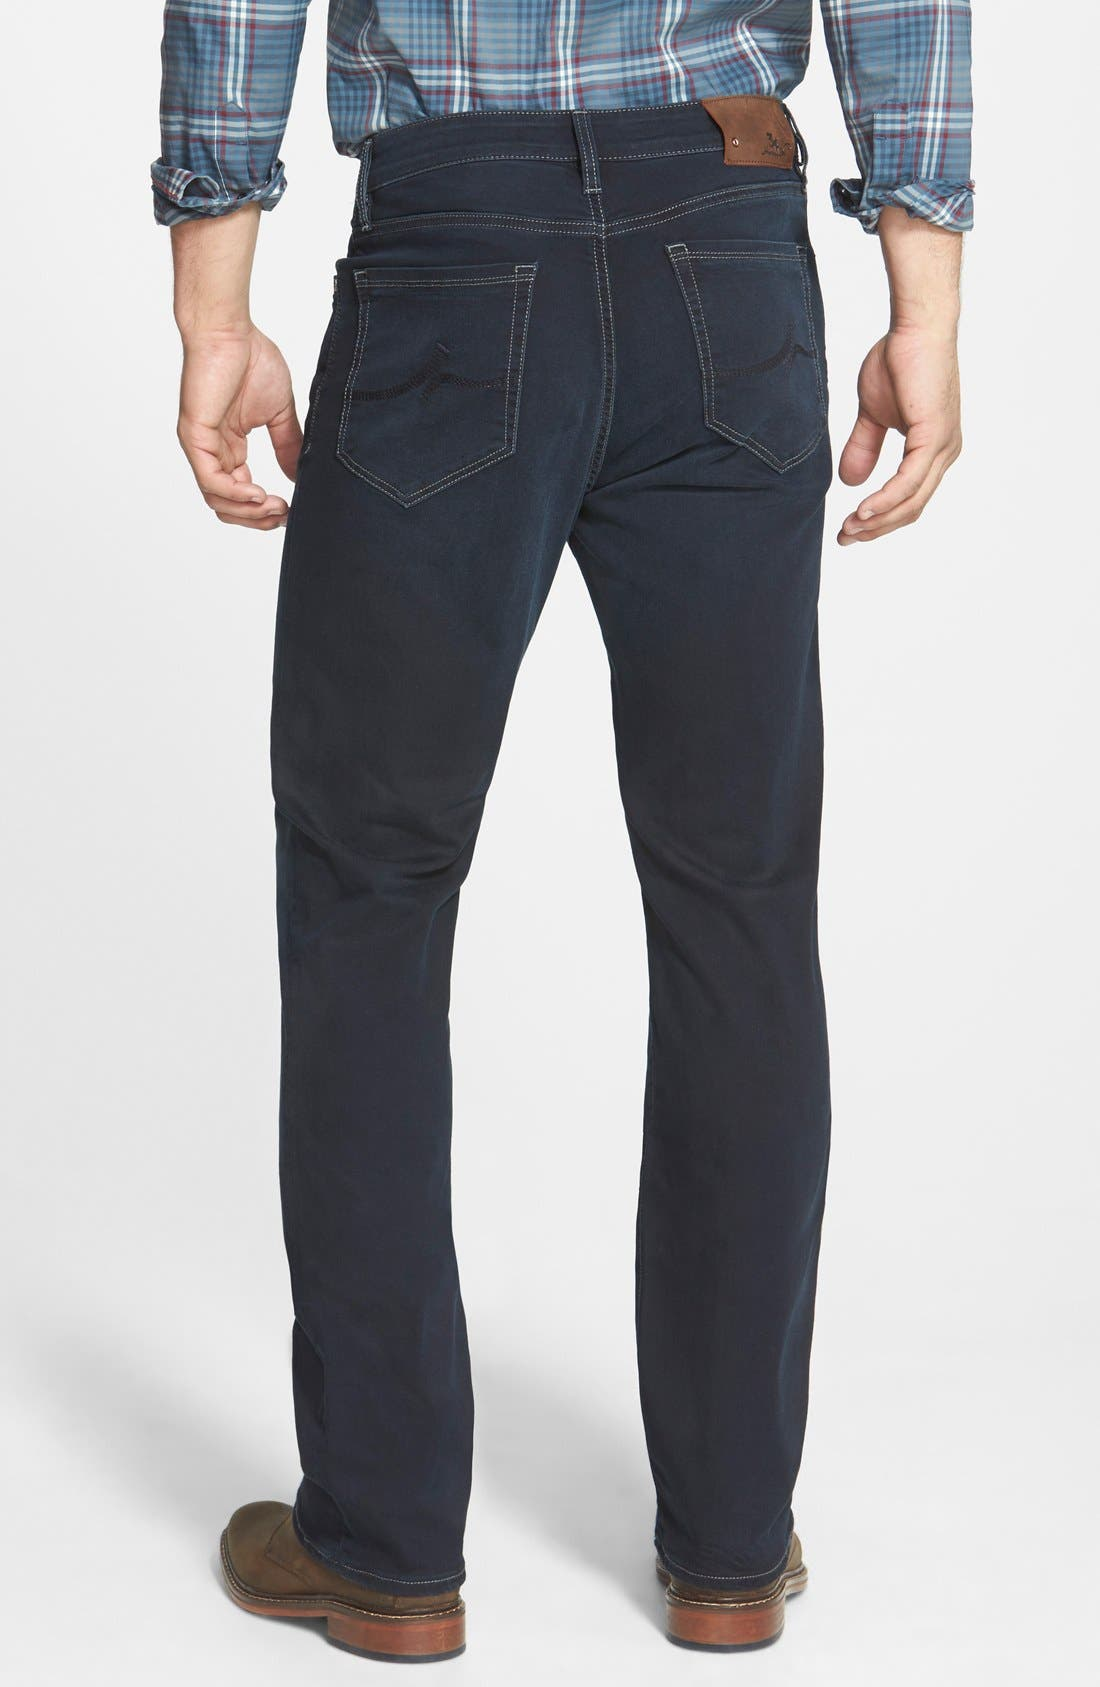 'Charisma' Classic Relaxed Fit Jeans,                             Alternate thumbnail 4, color,                             MIDNIGHT AUSTIN